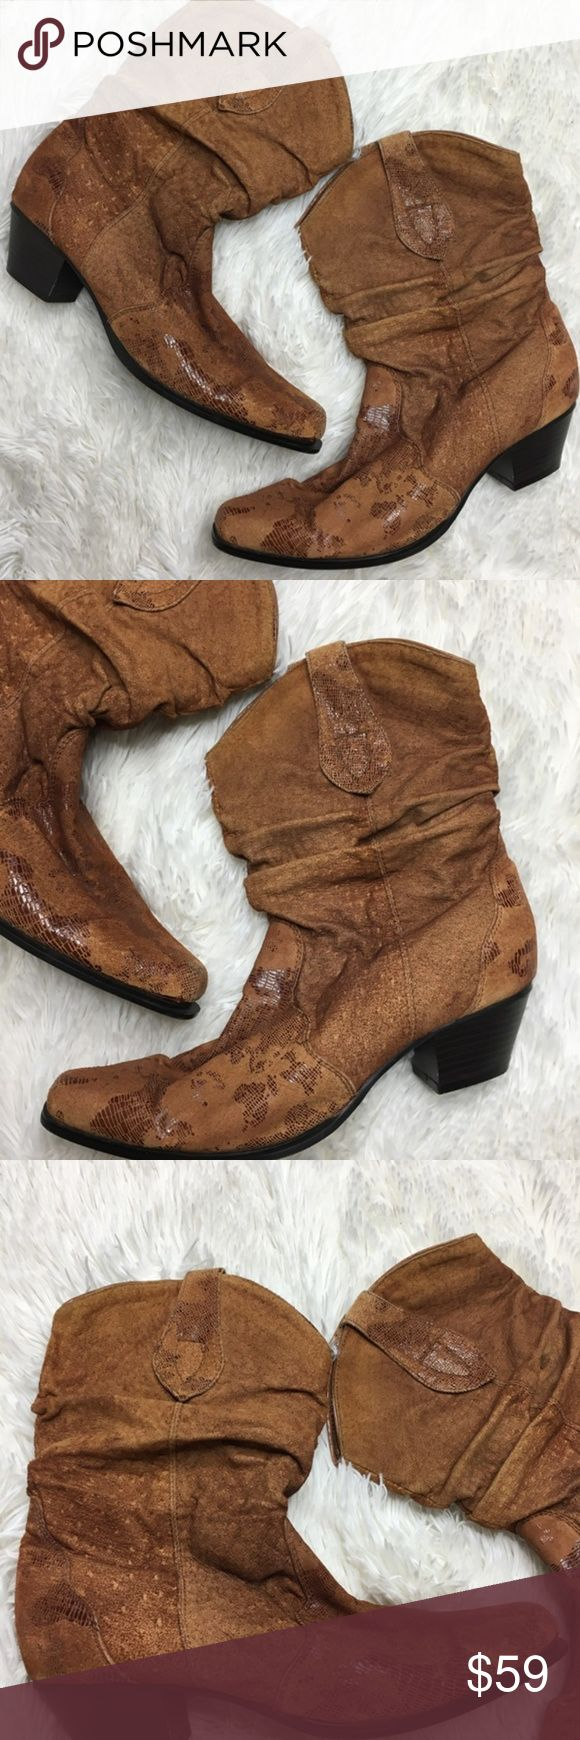 Oak Tree Farms Boots 9.5 Leather Suede Slouchy Oak Tree Farms Boots 9.5 Leather Suede Slouchy Boots Brown Cowboy Western Womens Heel height is 2.25 inches Oak tree farms Shoes Ankle Boots & Booties